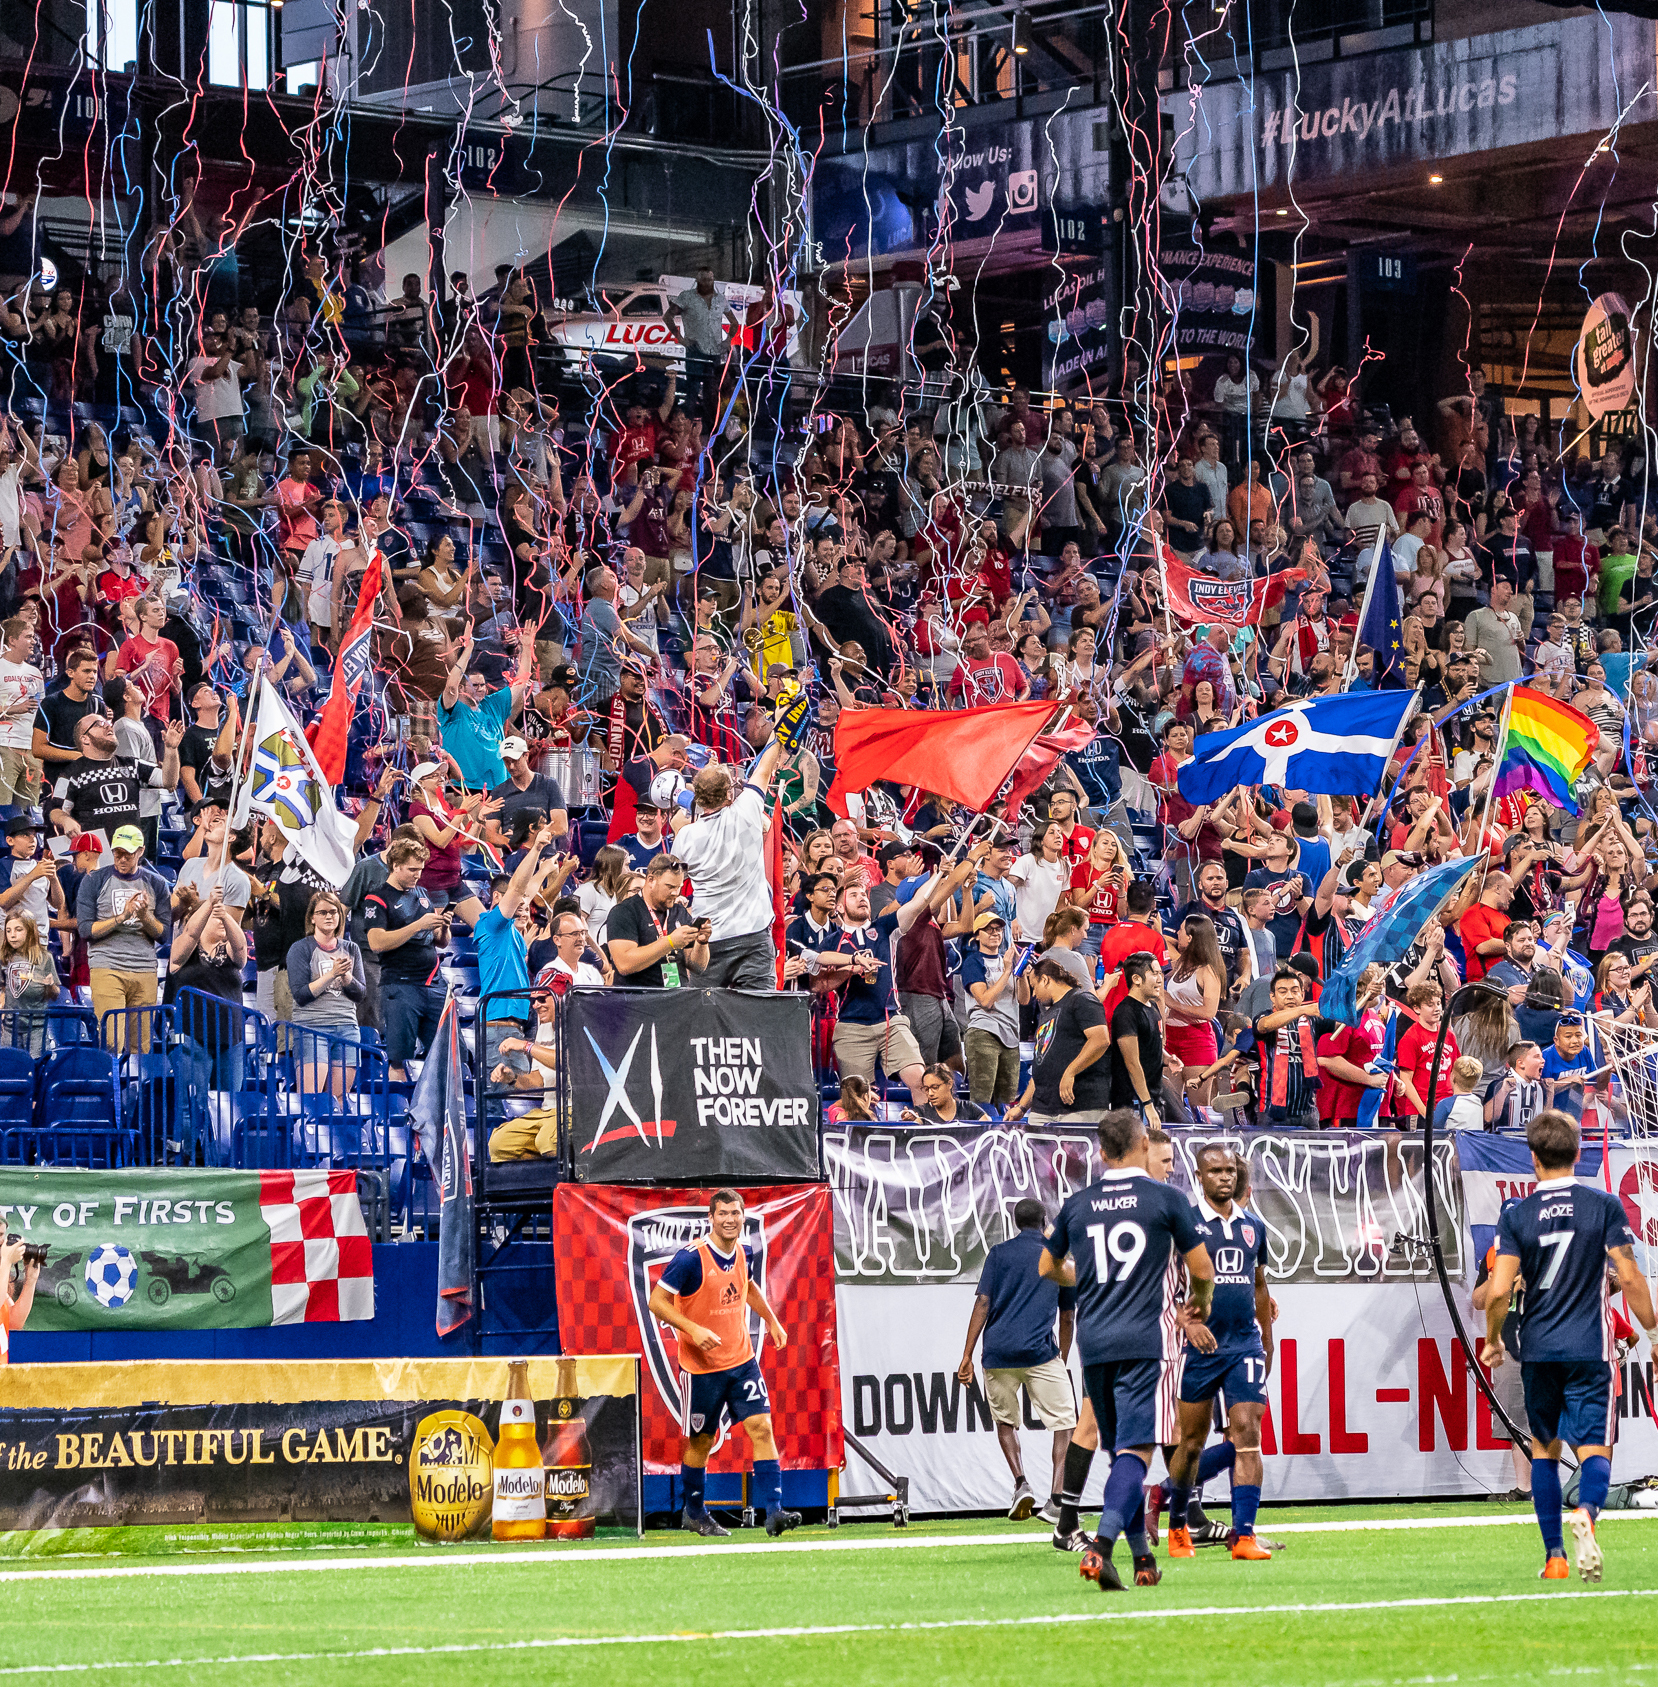 INDY ELEVEN BECOMES FIRST PROFESSIONAL SOCCER CLUB TO ALIGN WITH LEARFIELD IMG COLLEGE TICKET SOLUTIONS